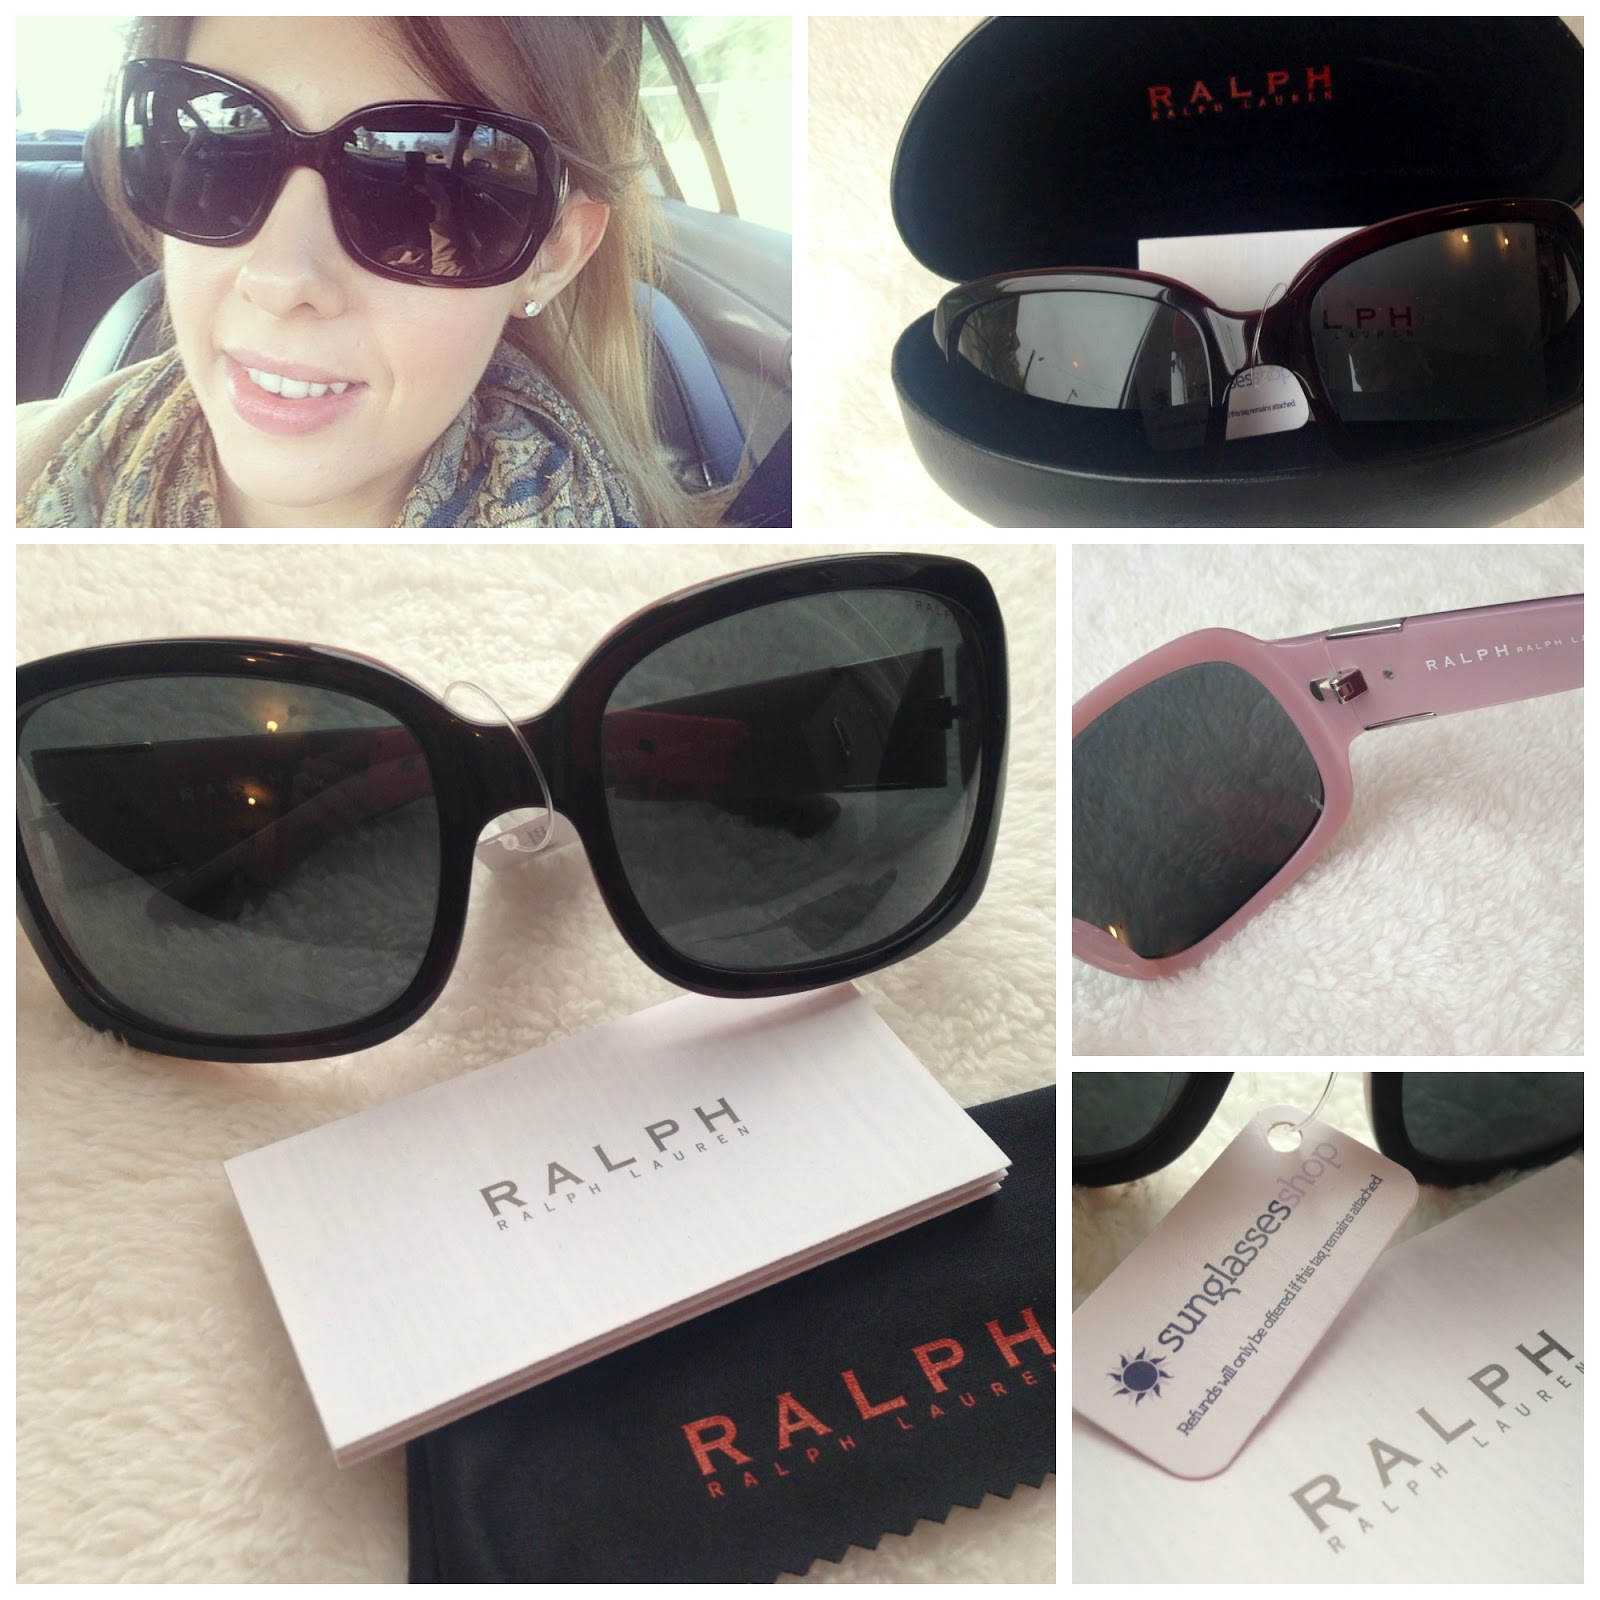 Ralph Lauren sunglasses competition giveaway